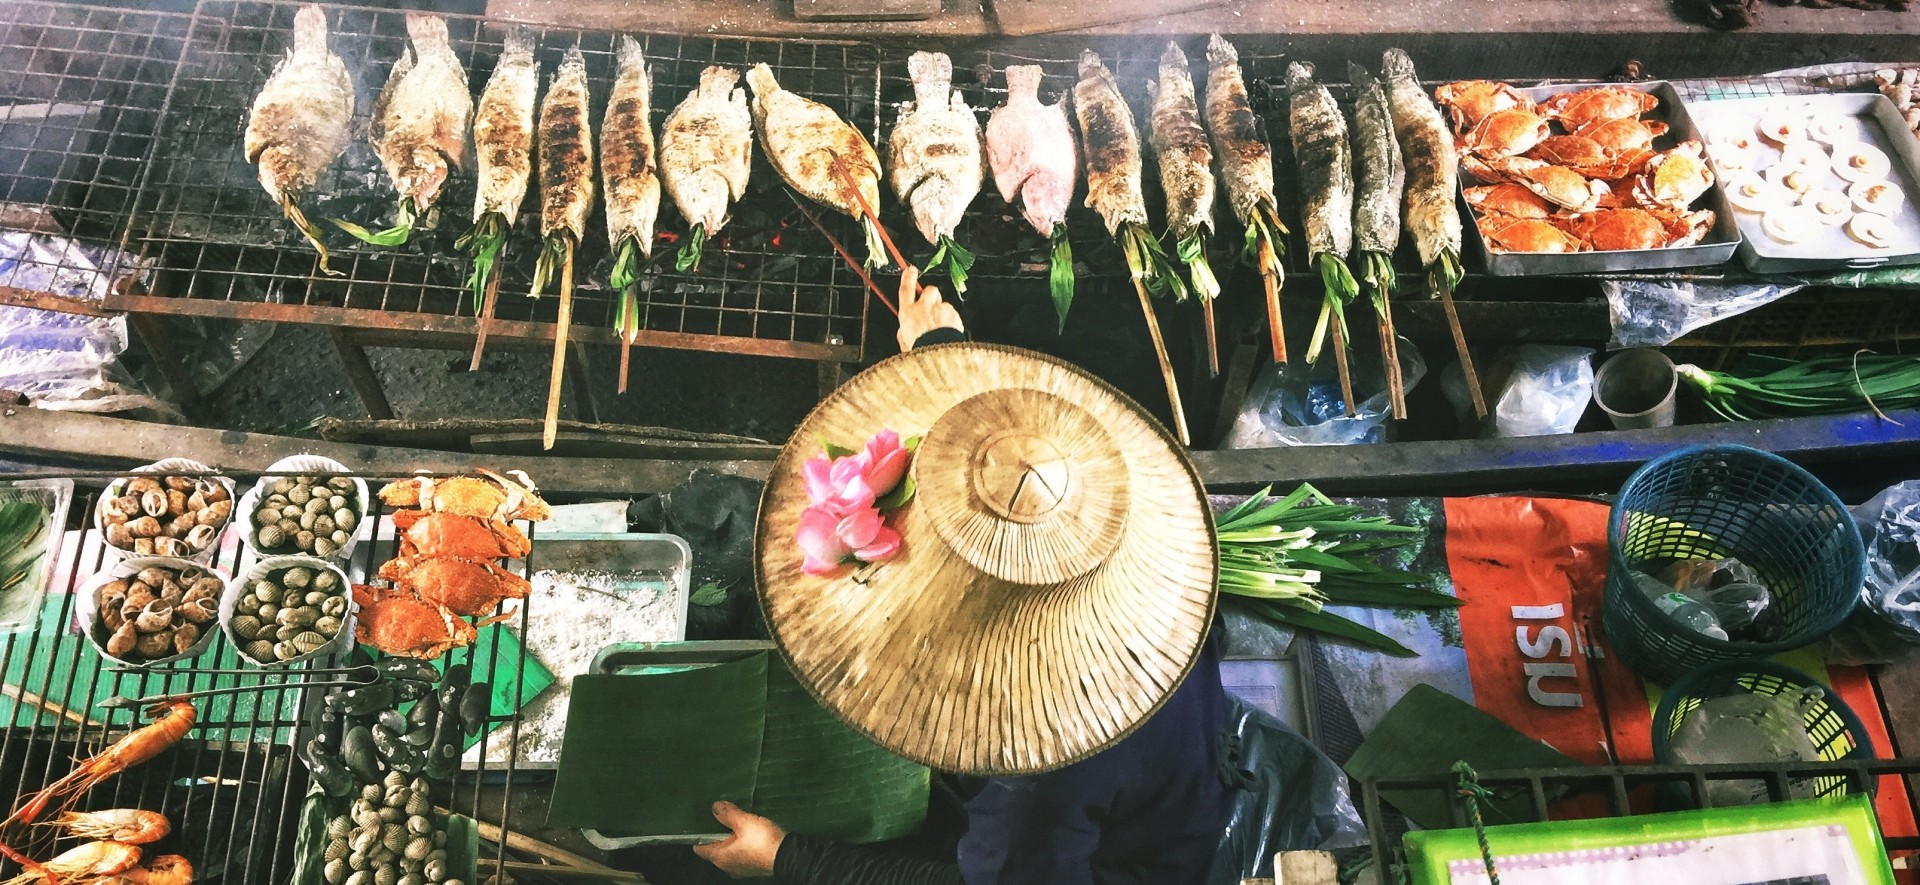 Going local is the essential ingredient for an unforgettable foodie  adventure